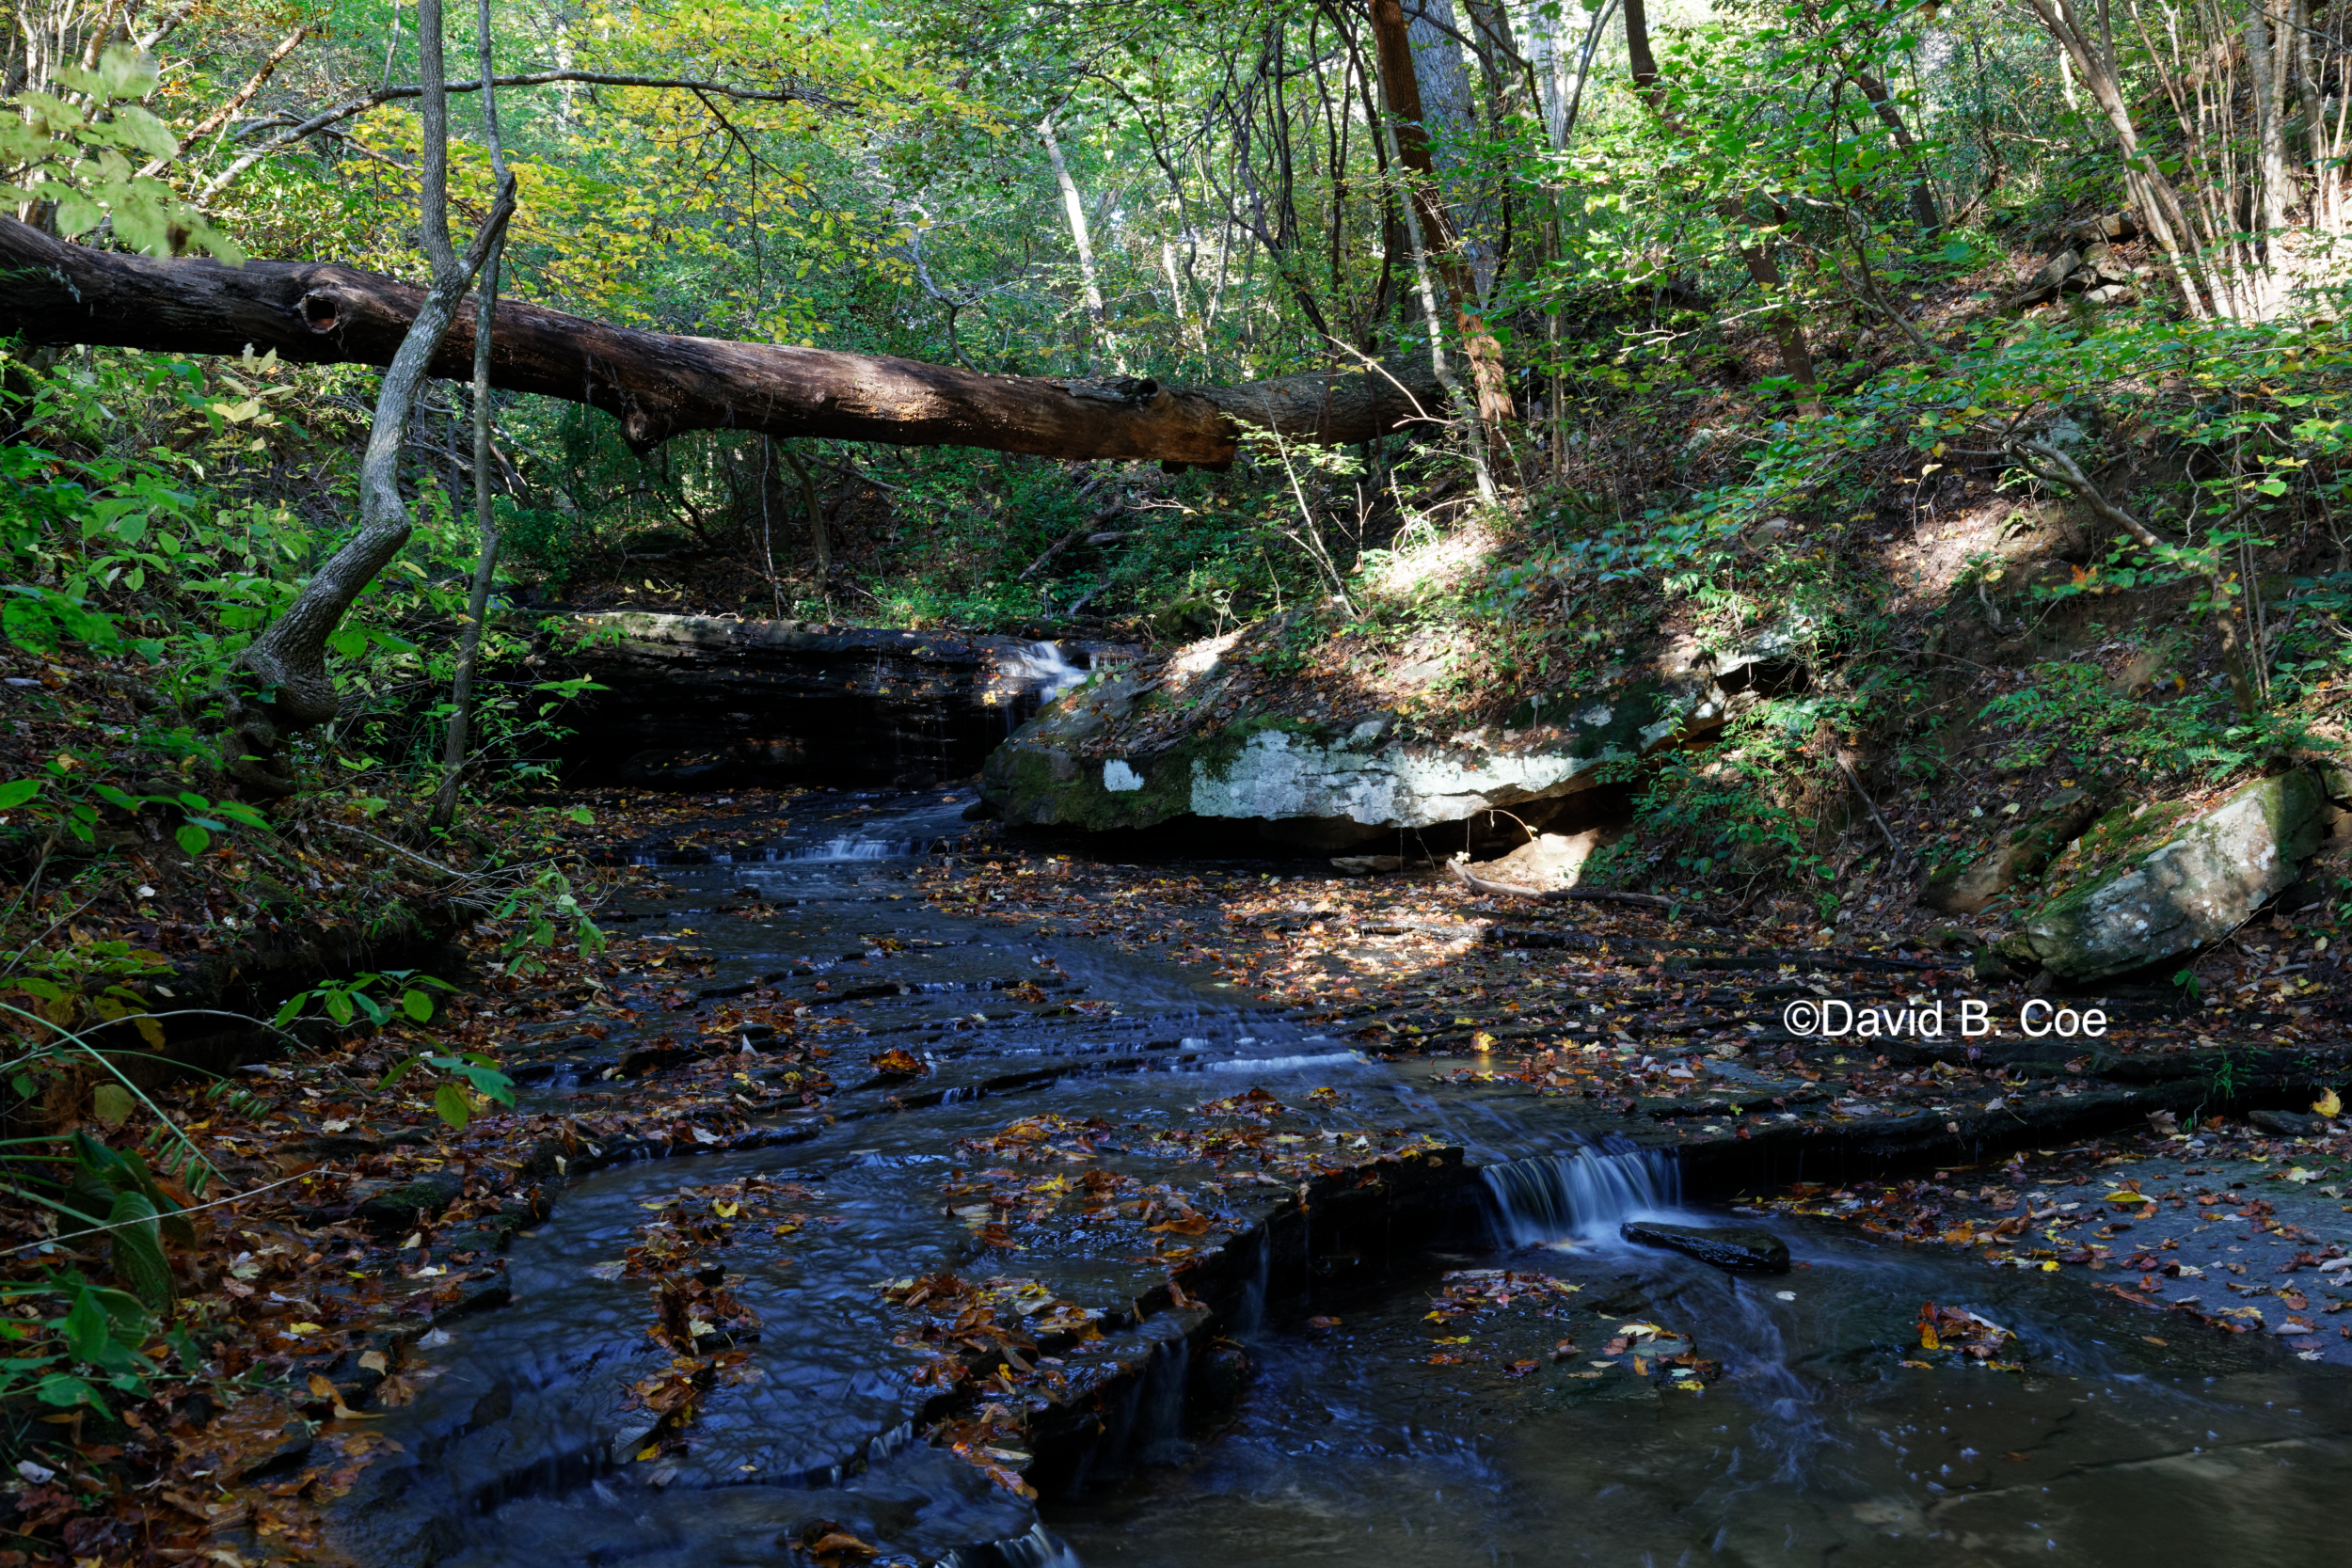 Morgan's Steep Stream, Fall, by David B. Coe